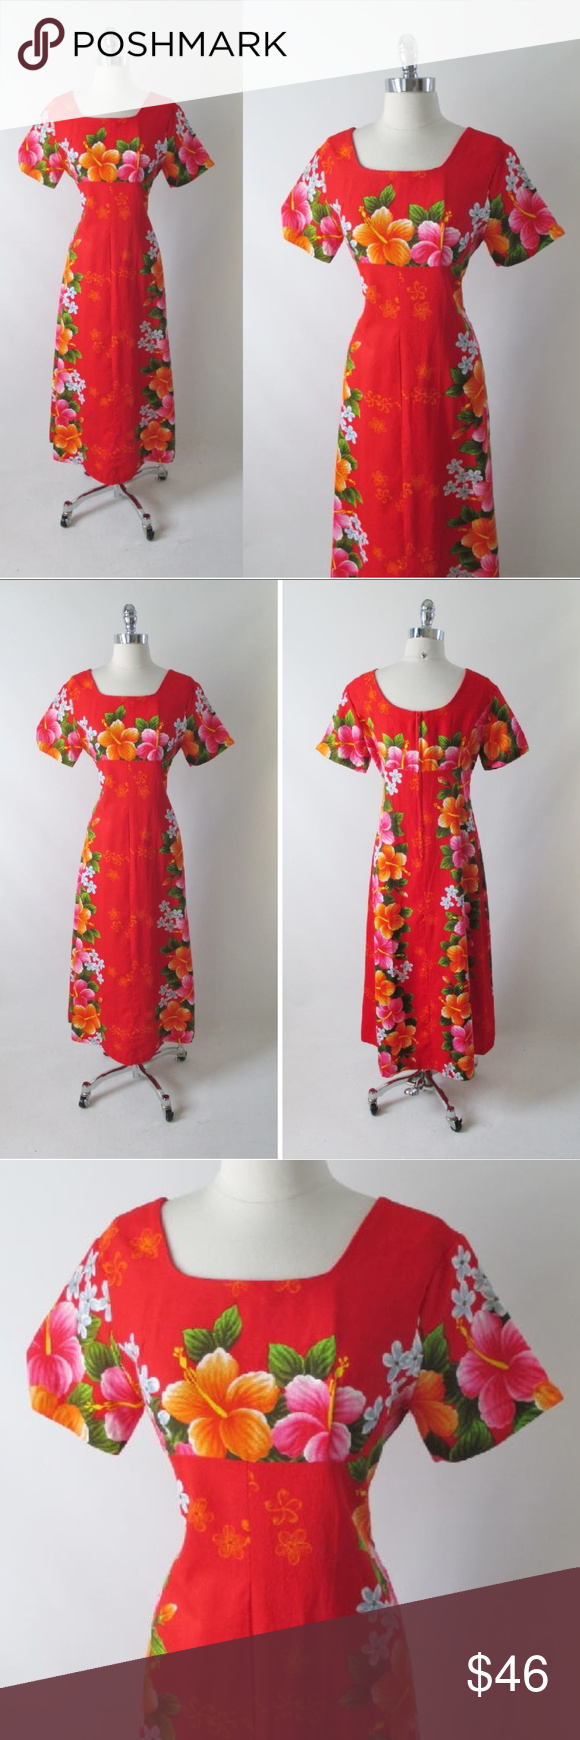 42c40b863d98 Vintage 60's Red Hawaiian Barkcloth Maxi Dress A vintage Hawaiian dress  from the 60's Red barkcloth with a bold Hibiscus print in orange and pink  Short ...